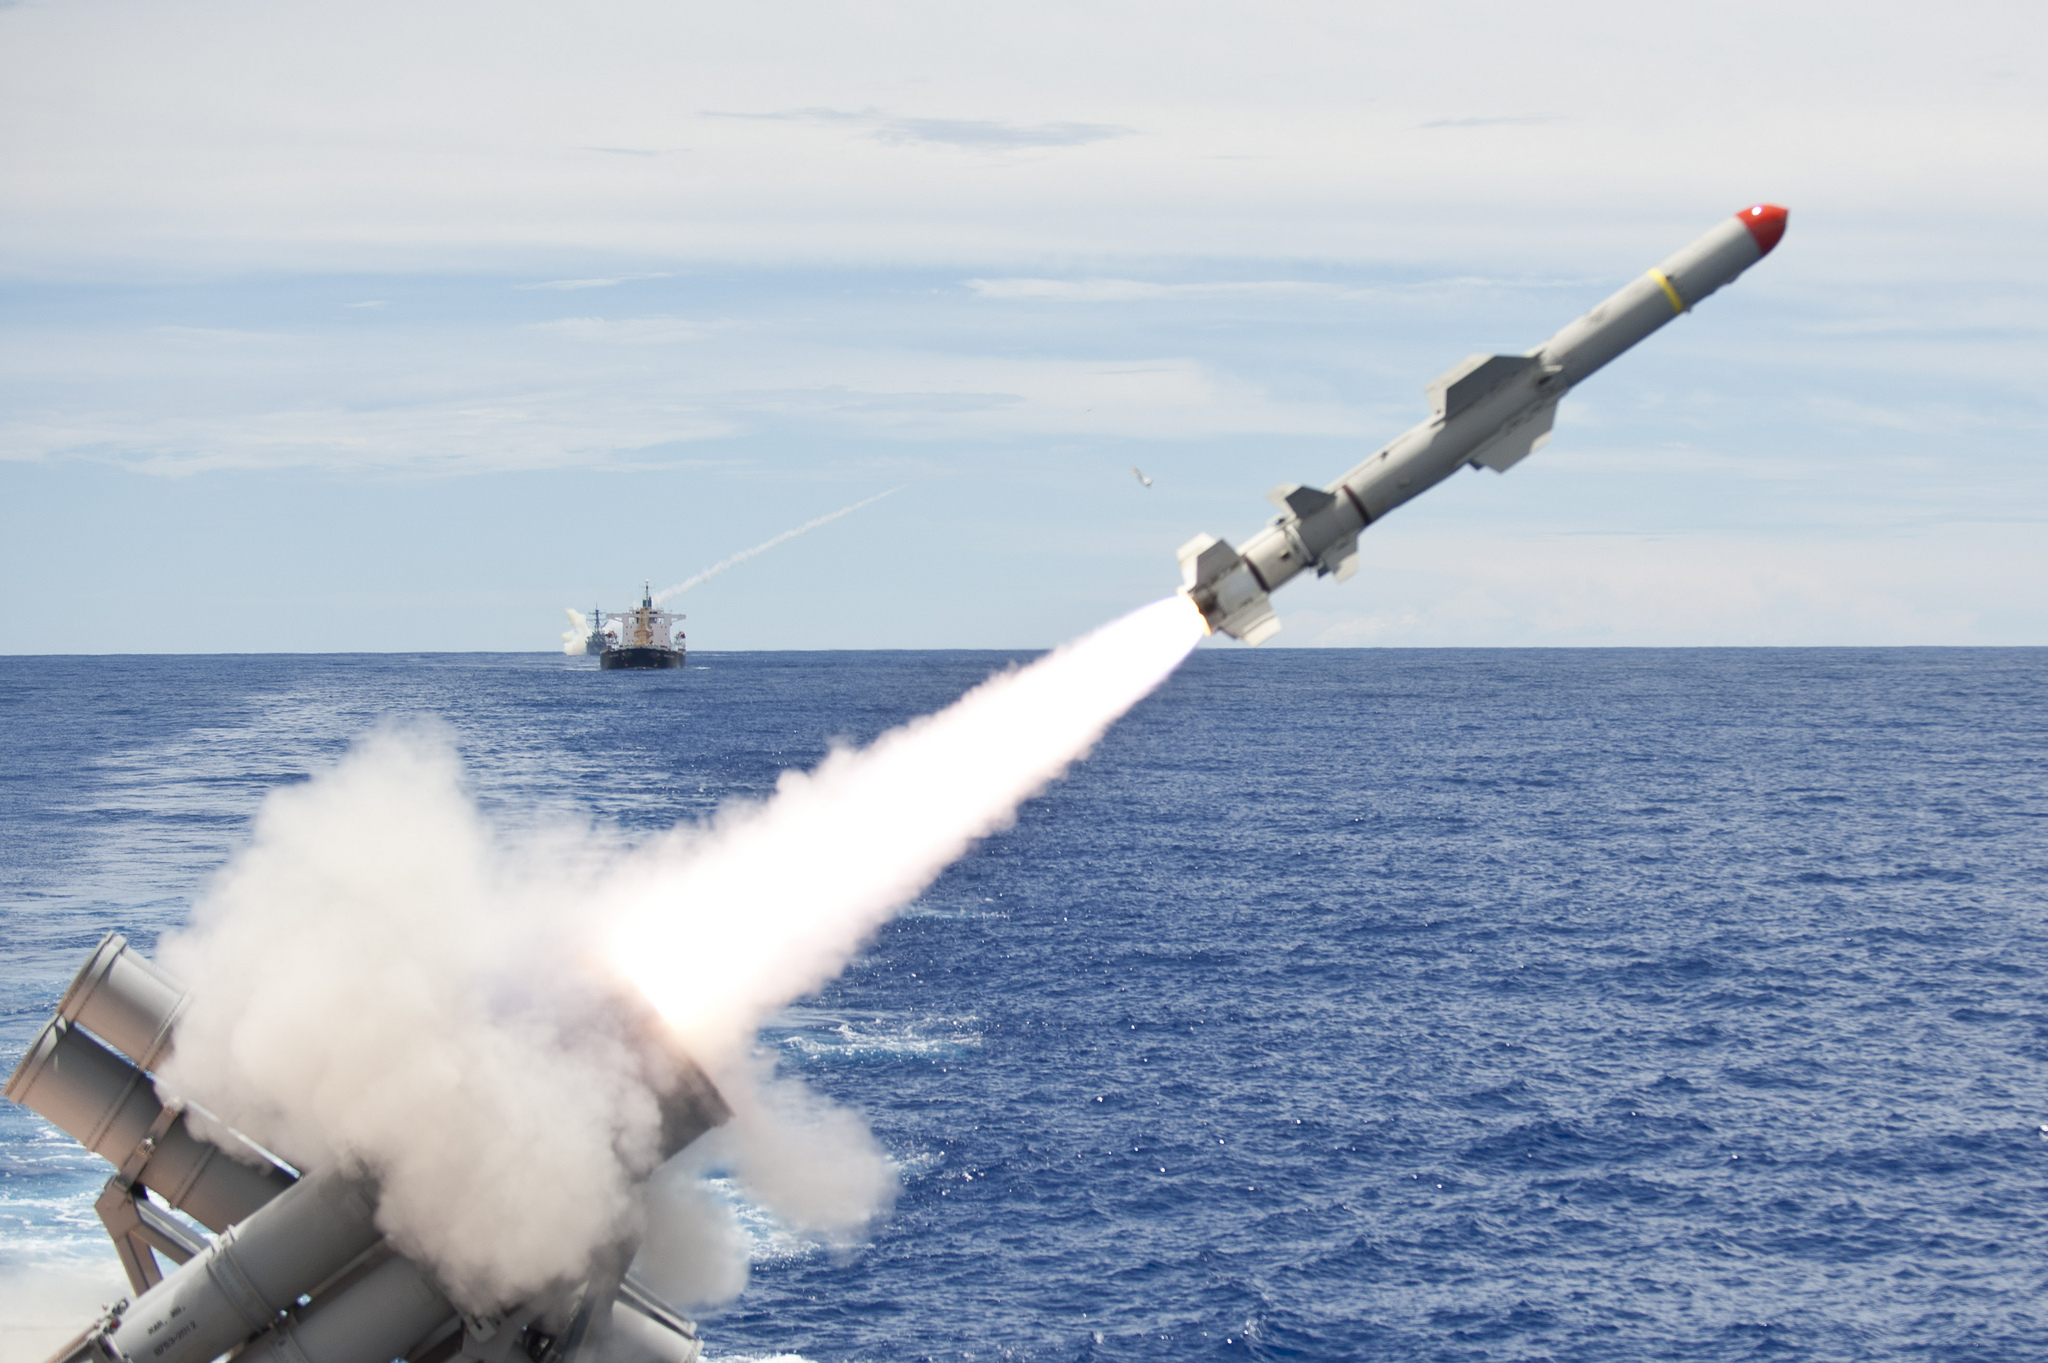 Meet the Harpoon : Know Just How Powerful is America's Harpoon Missile